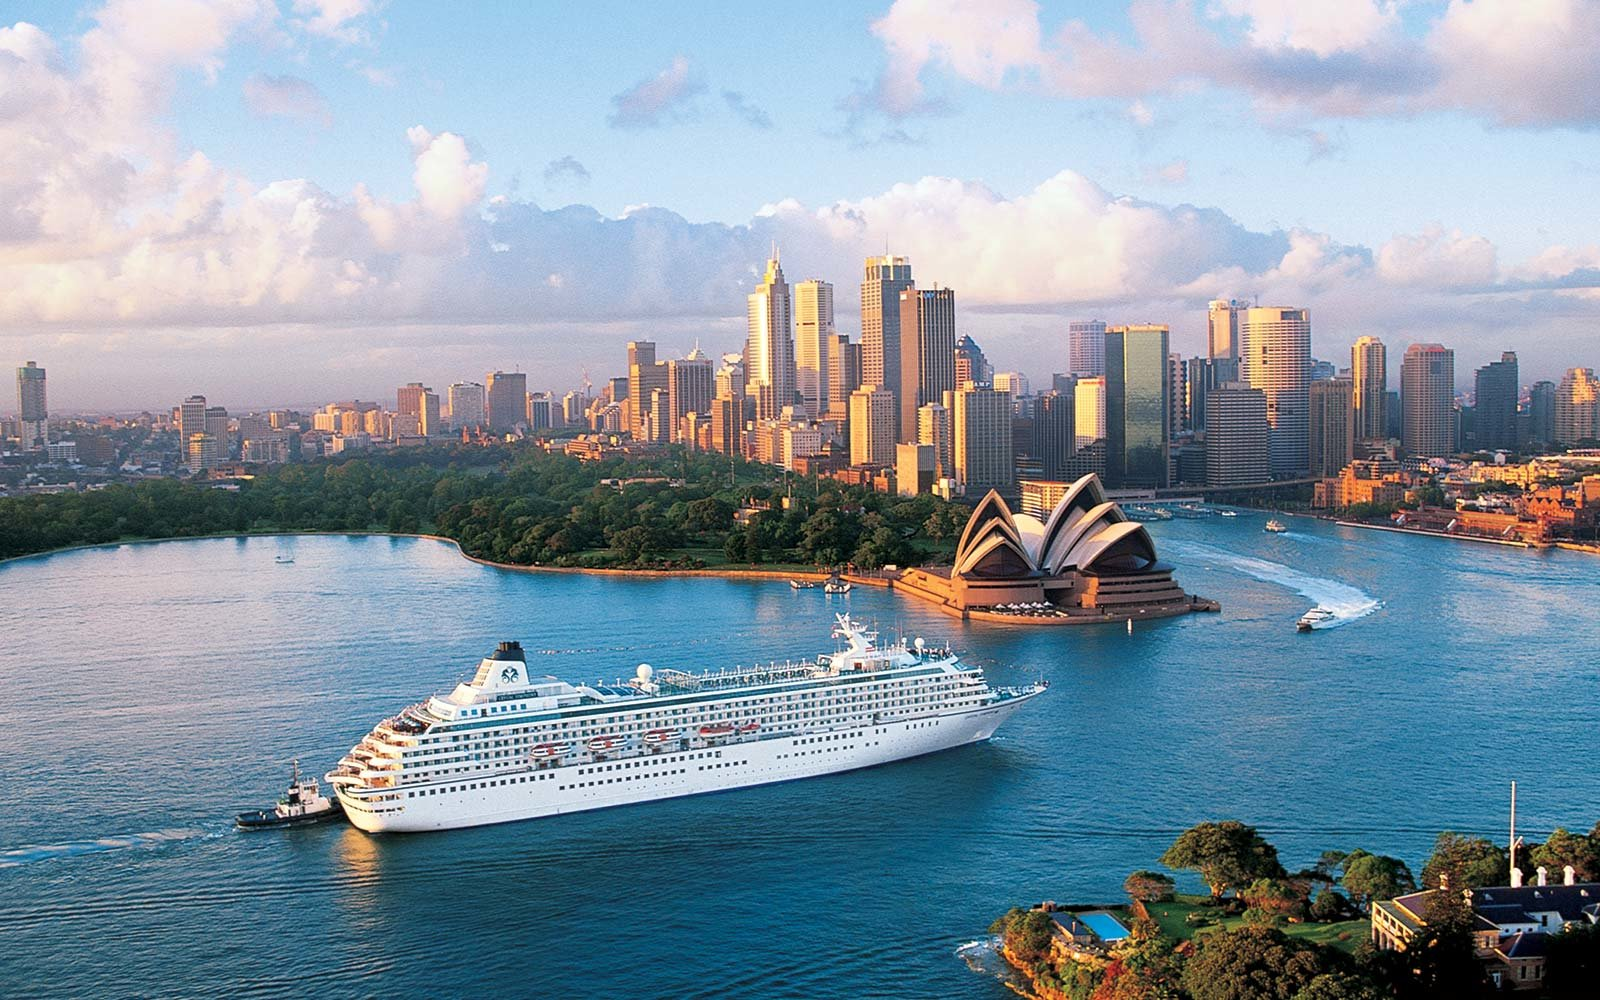 Cruises: Crystal Cruises Symphony